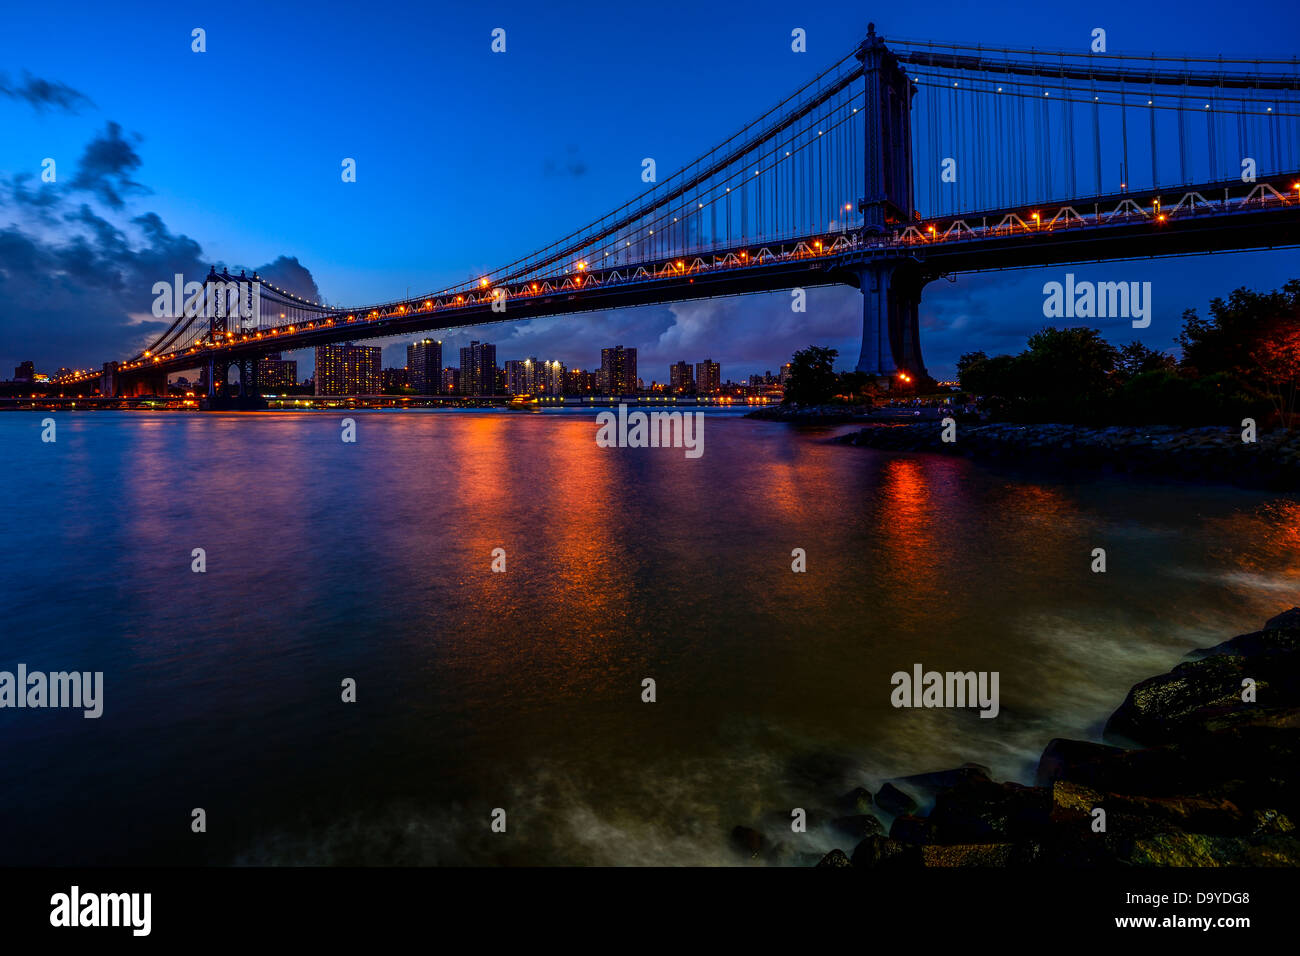 Night view of Manhattan Bridge and Lower Manhattan, New York City - Stock Image